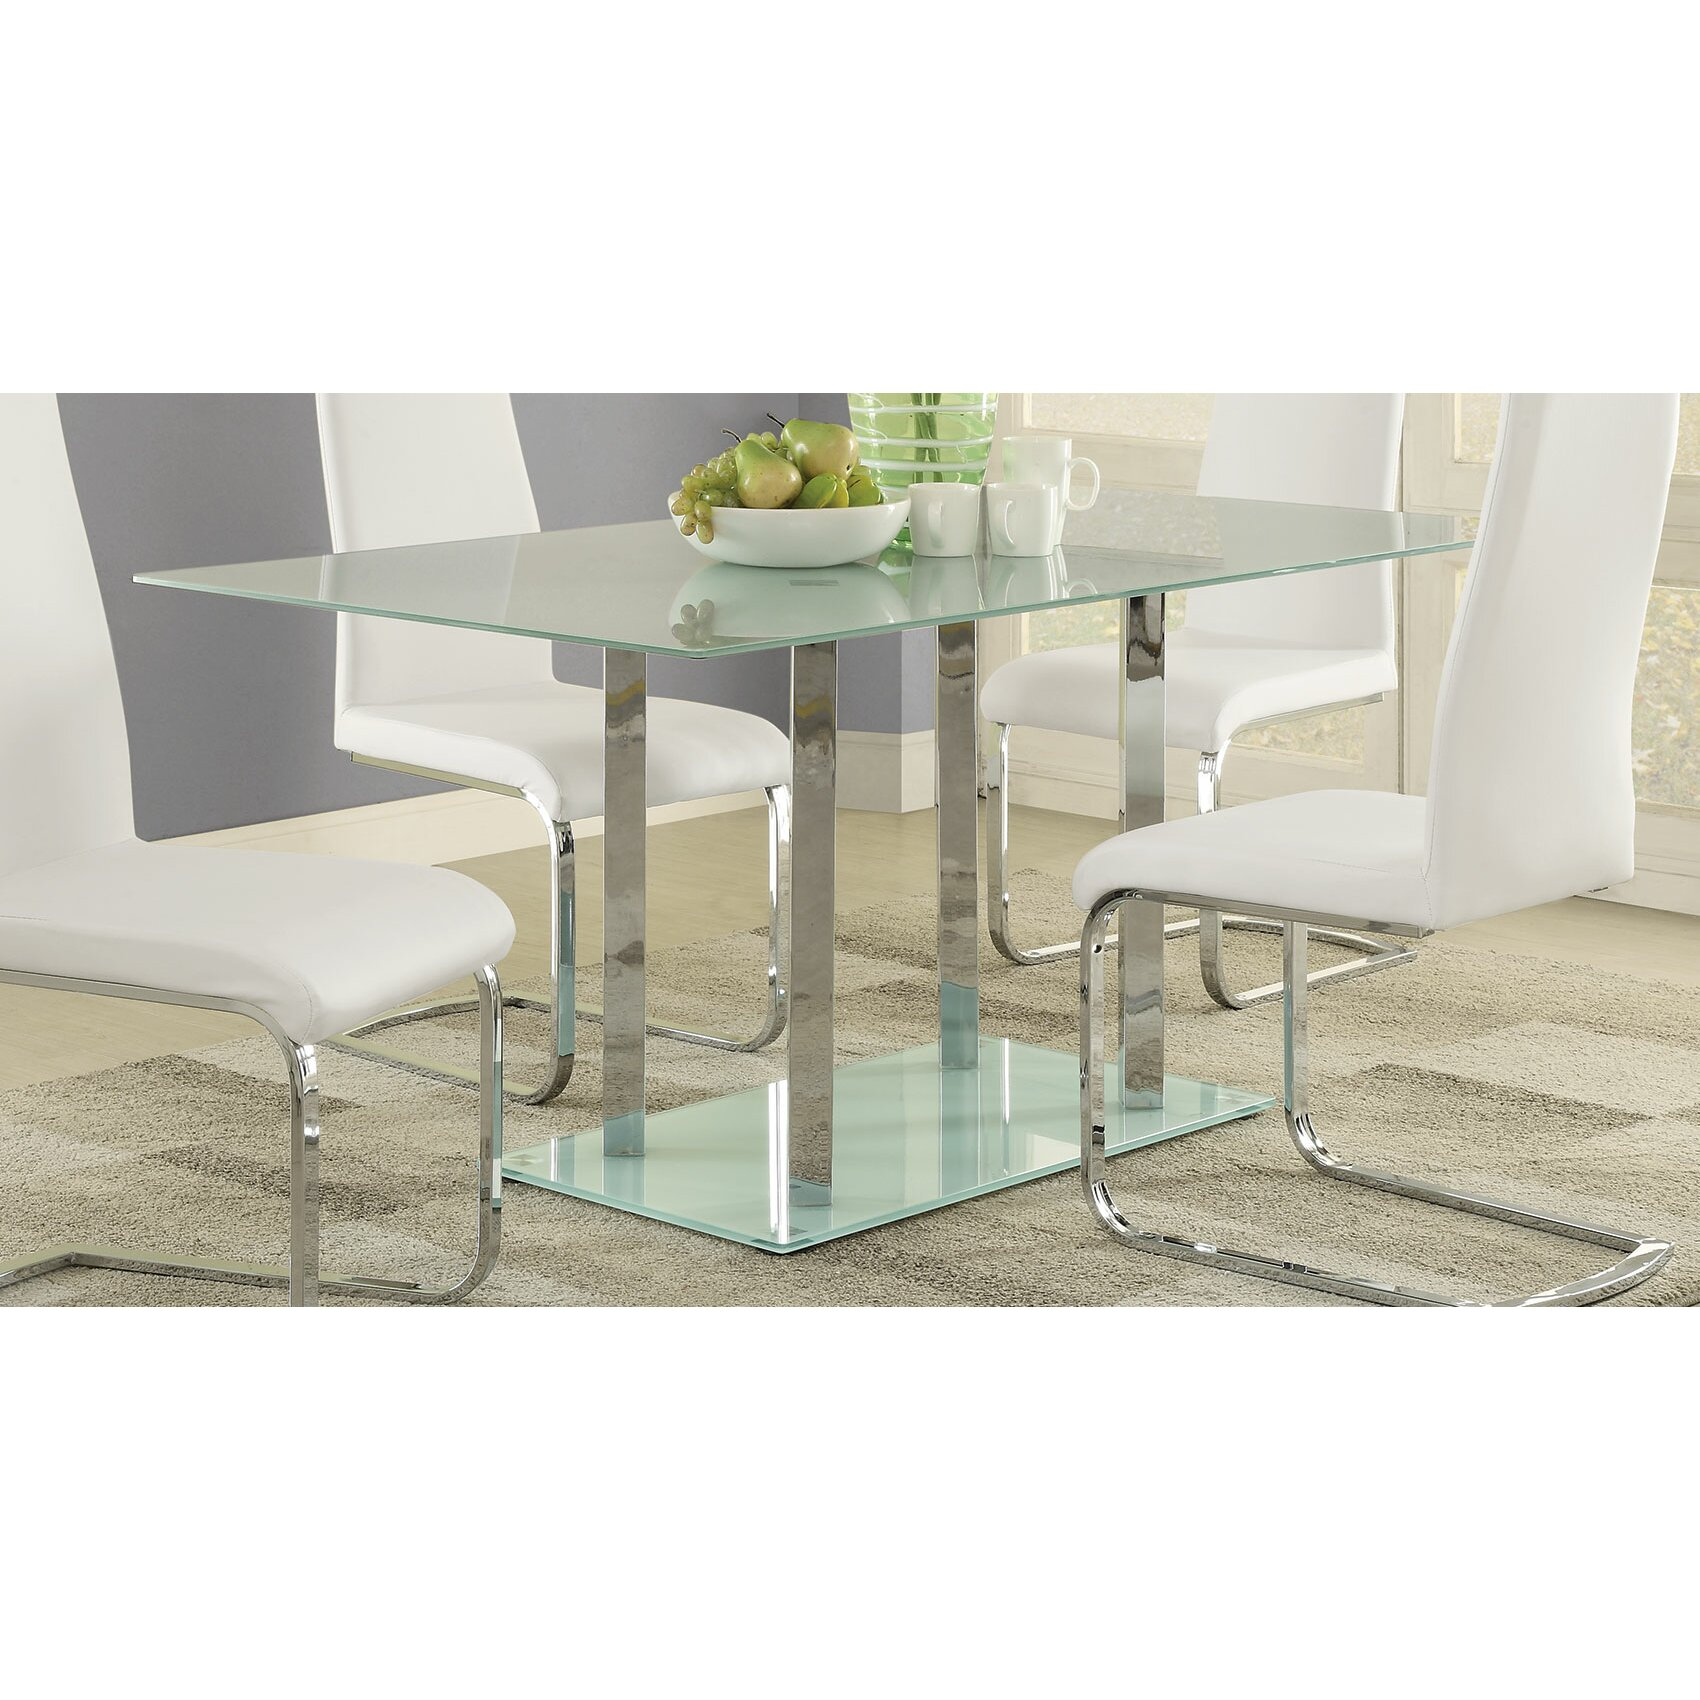 Wildon home geneva group dining table reviews for Wildon home dining